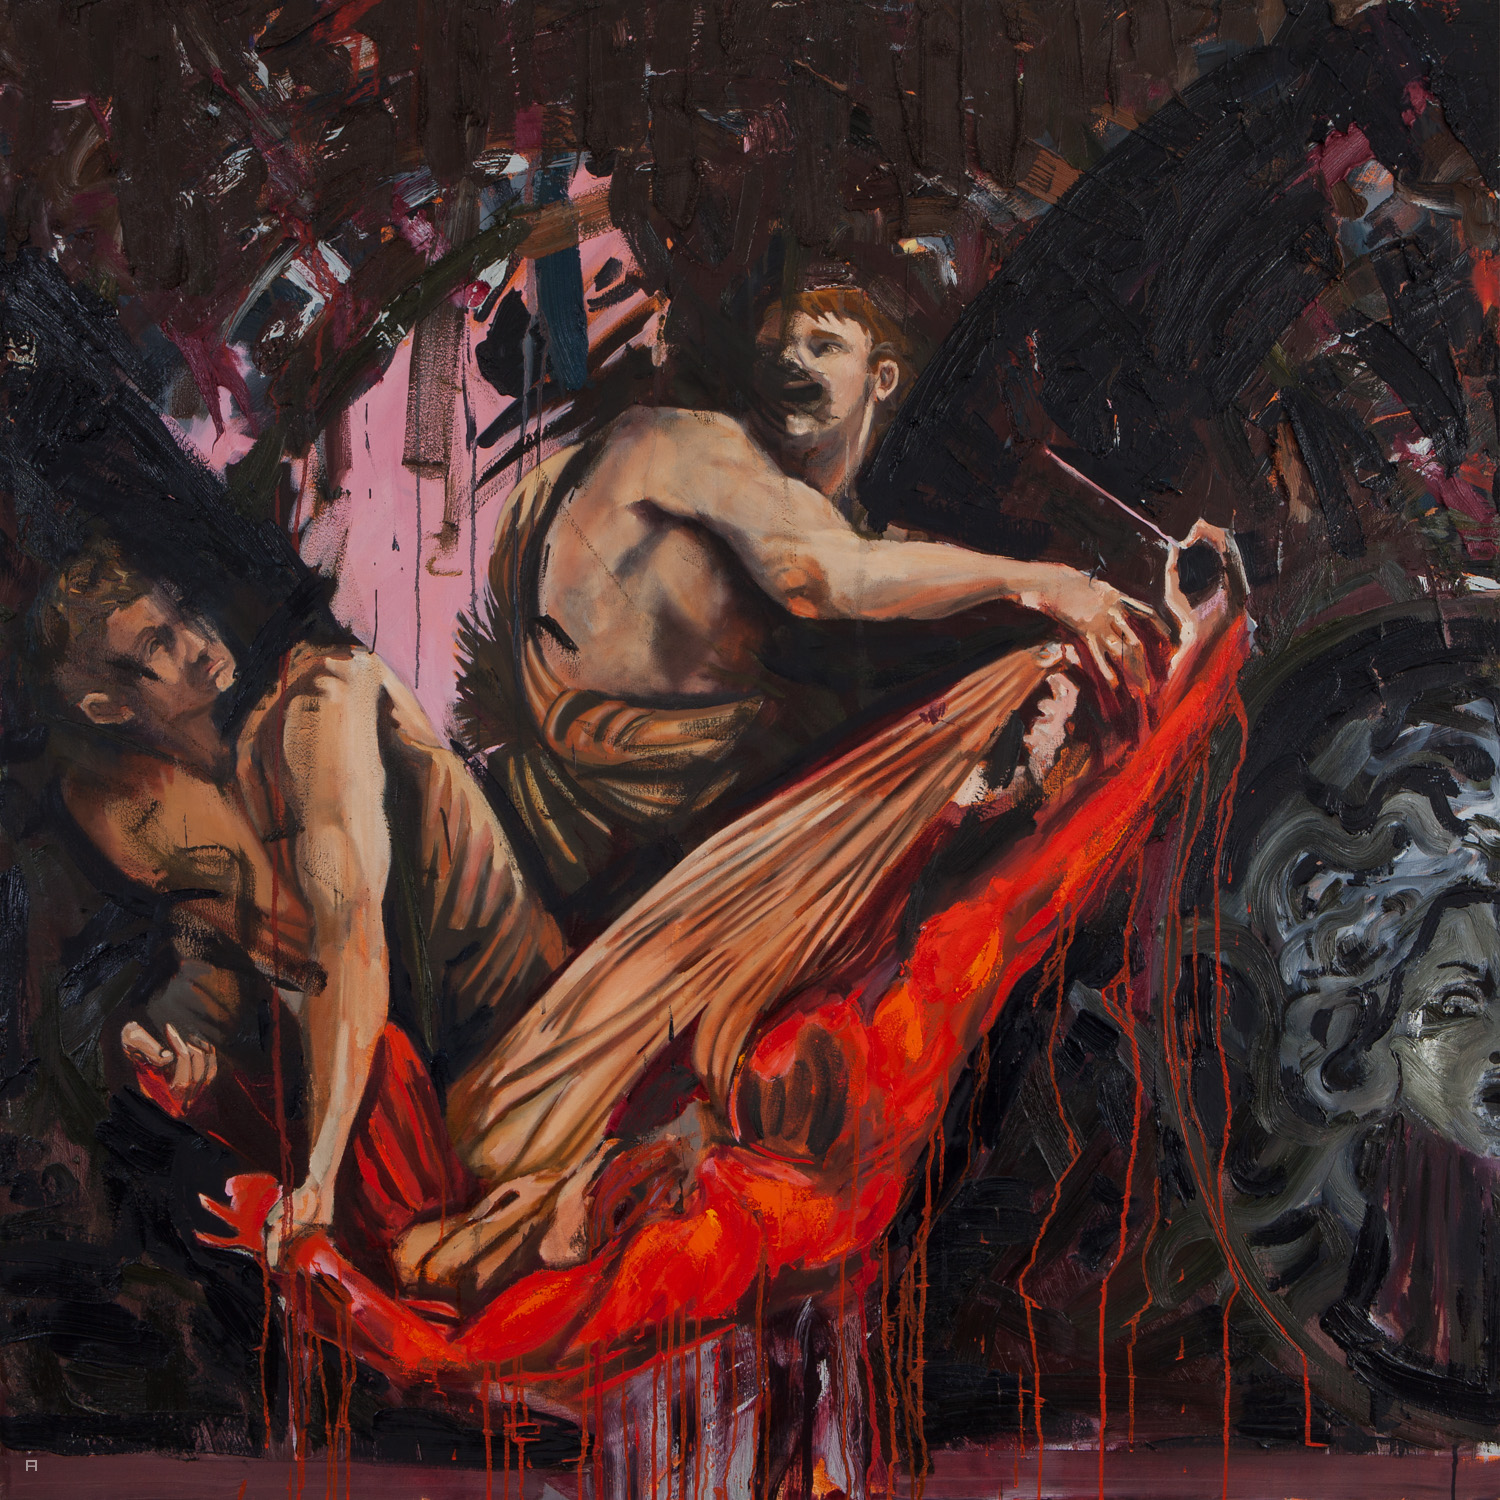 Lament, Oil on canvas, 150x150 cm, 2016